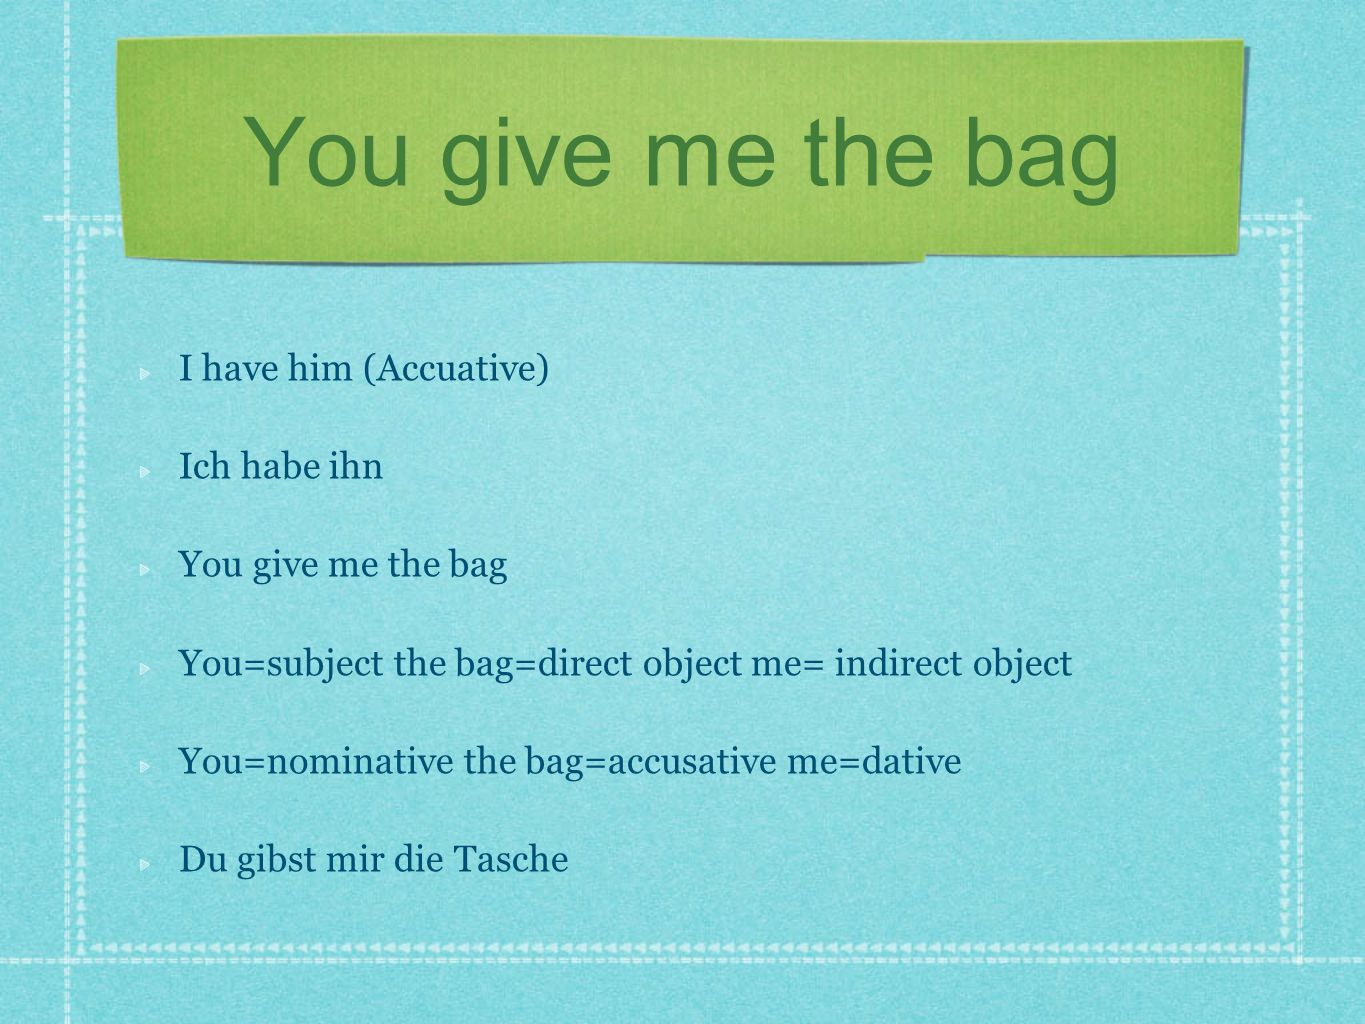 You give me the bag I have him (Accuative) Ich habe ihn